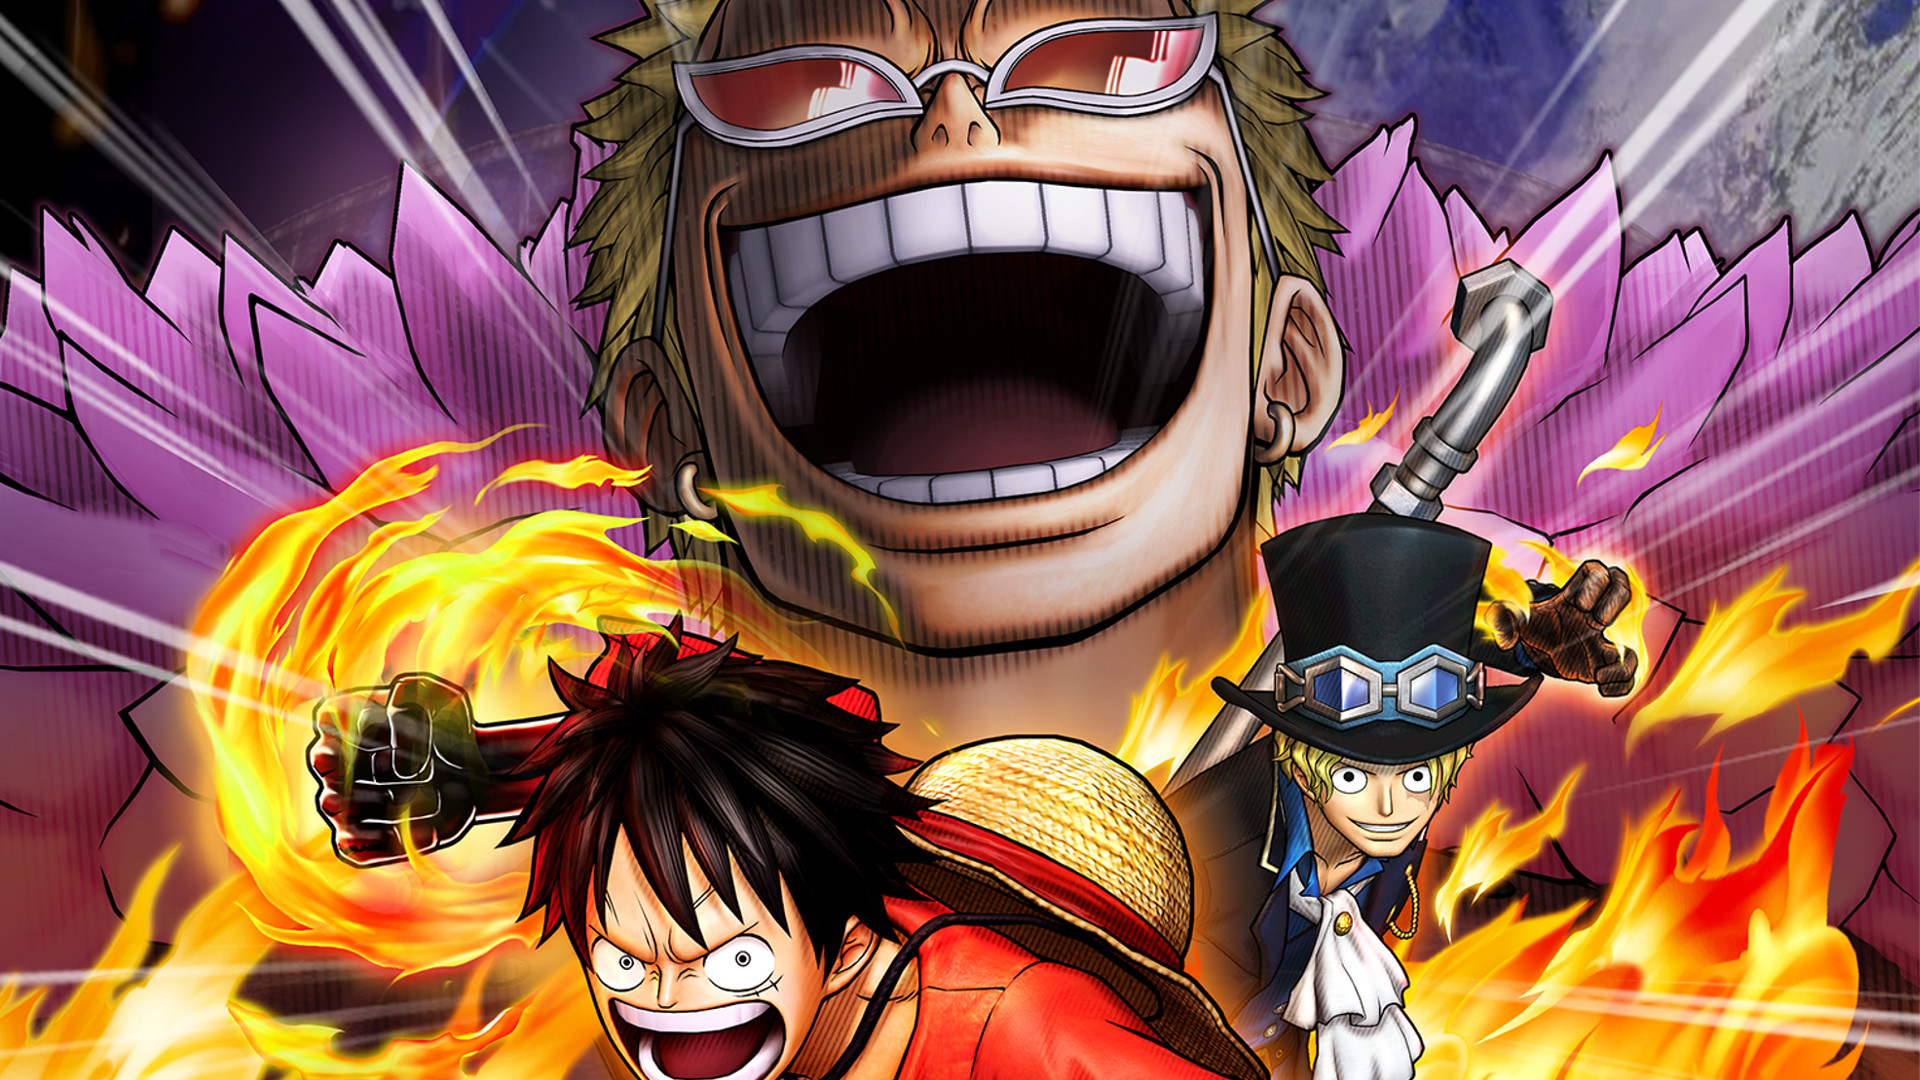 [Análise] - One Piece Pirate Warriors 3 - PS3/4/Vita/PC/Switch One-piece-pirate-warriors-3-thumbnail